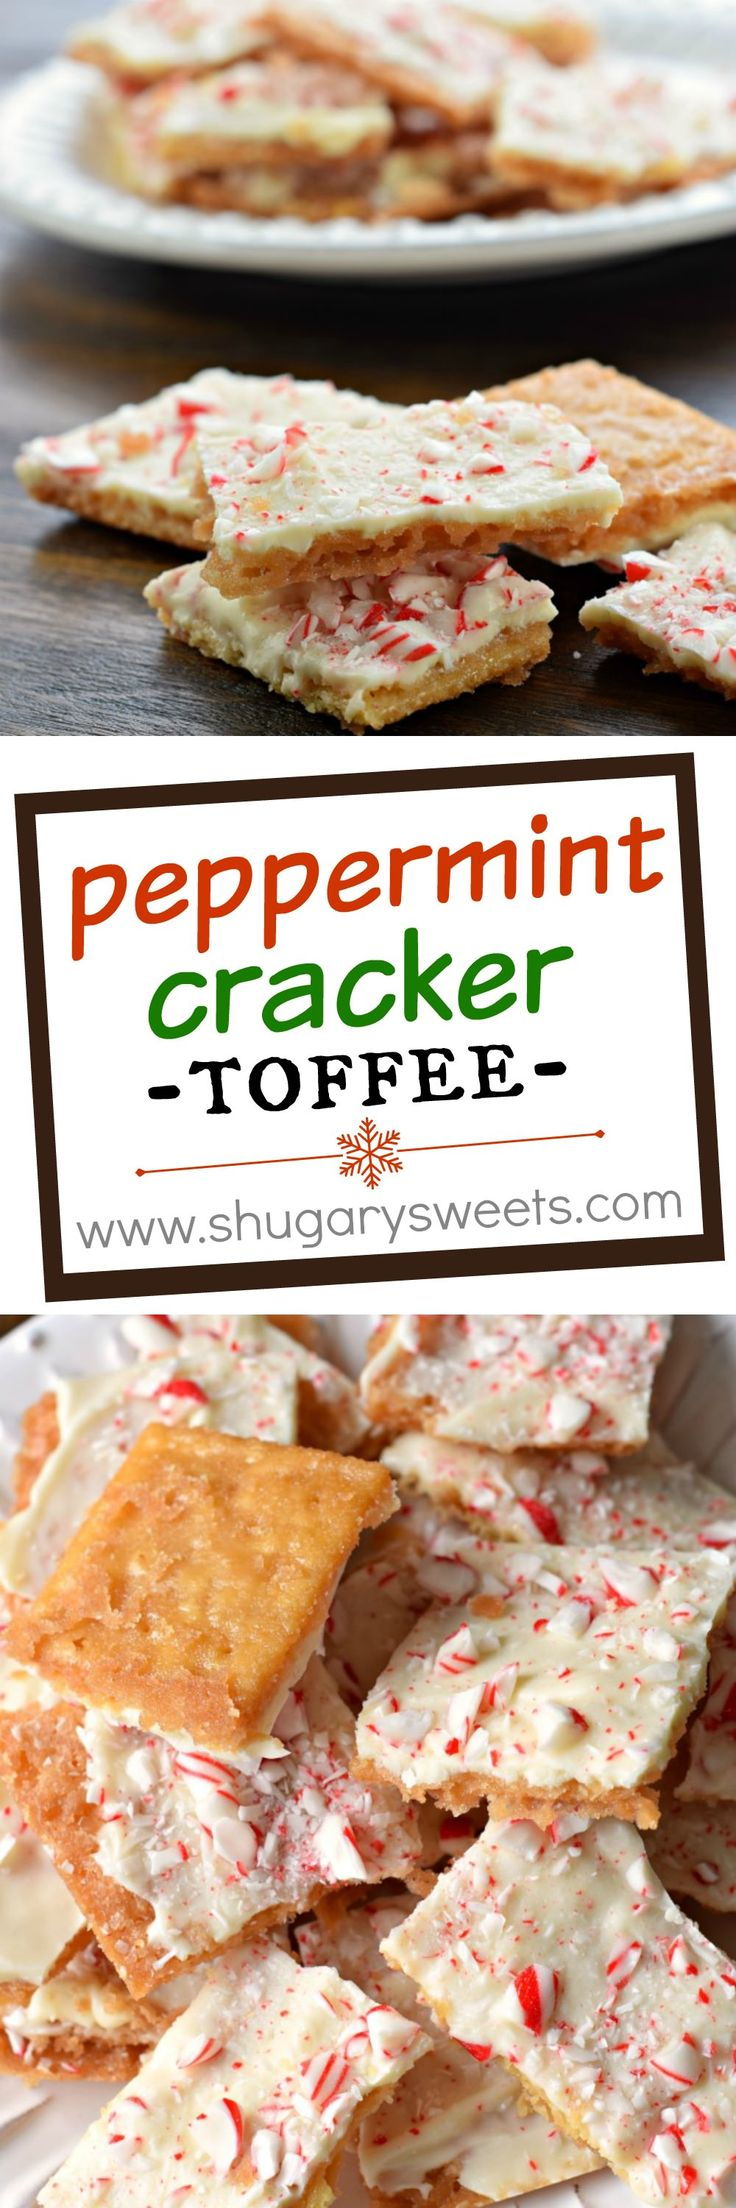 This Peppermint Cracker Toffee is ridiculously easy and delicious ...